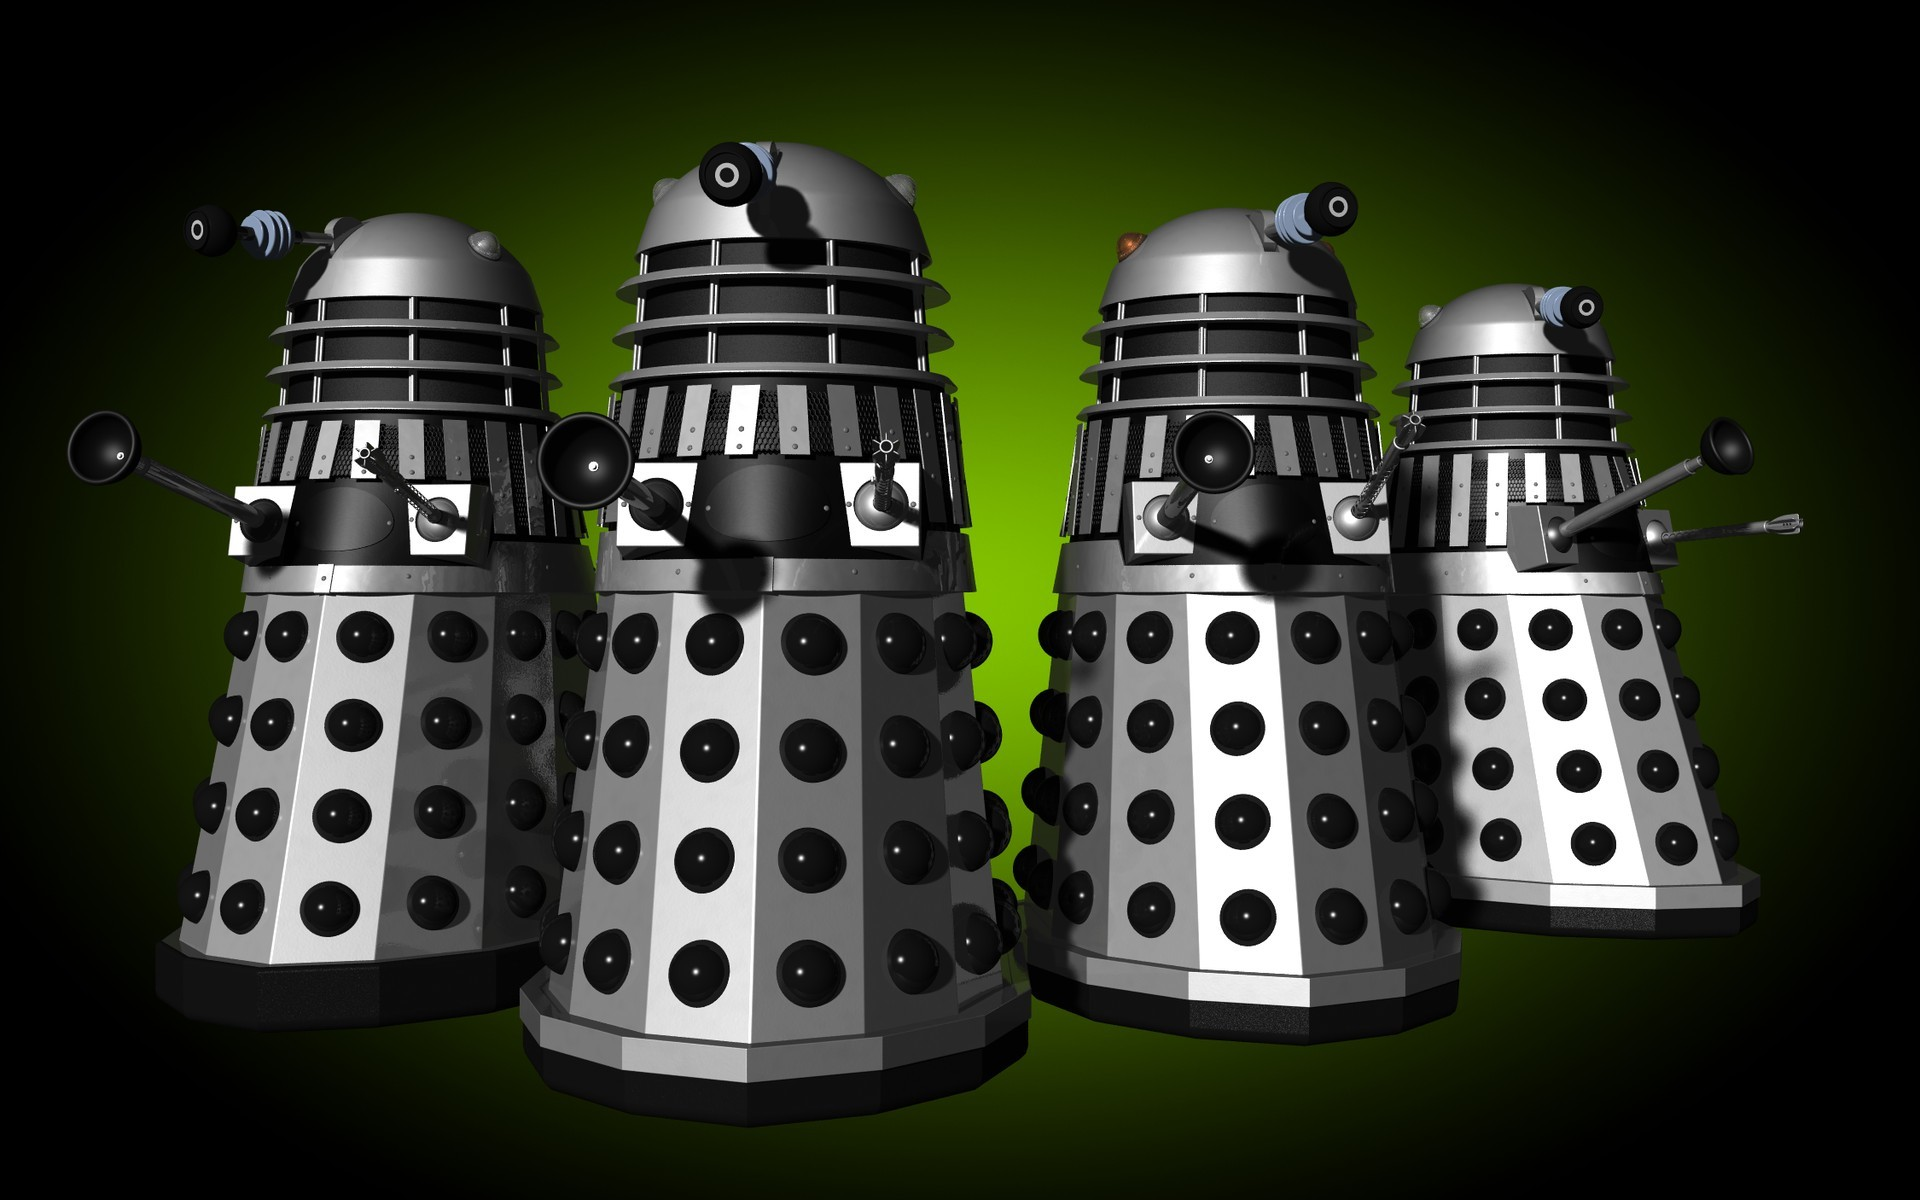 1920x1200 Doctor Who Wallpaper Dalek wallpaper